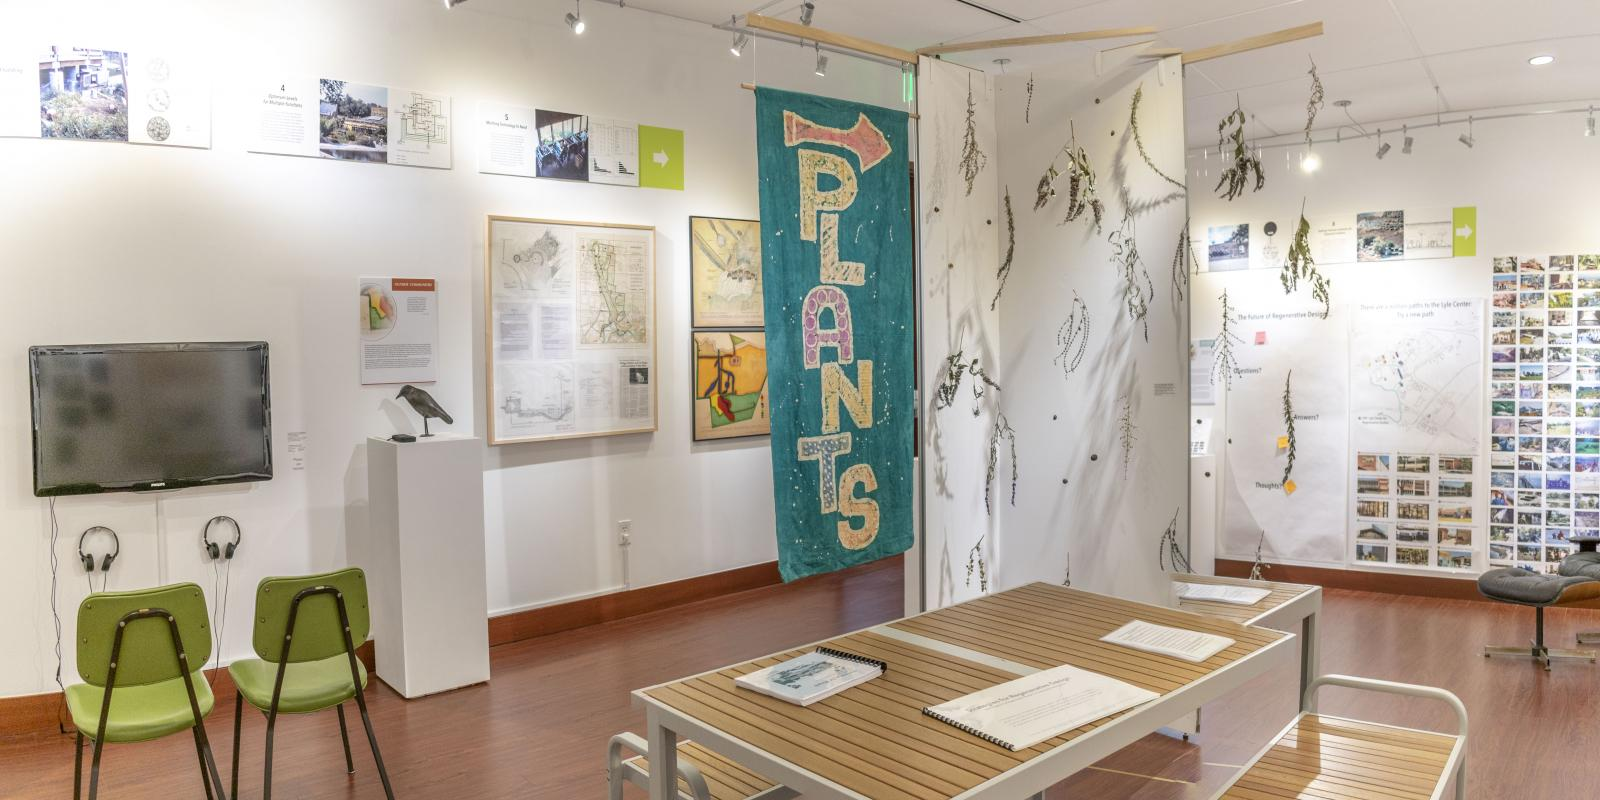 """Installation View, Center of gallery, """"John T. Lyle and the Future of Regenerative Design"""" Exhibition, Oct.17, 2019 to Dec.8, 2019, Curator: Cybele Lyle, Don B. Huntley Gallery, Cal Poly Pomona."""